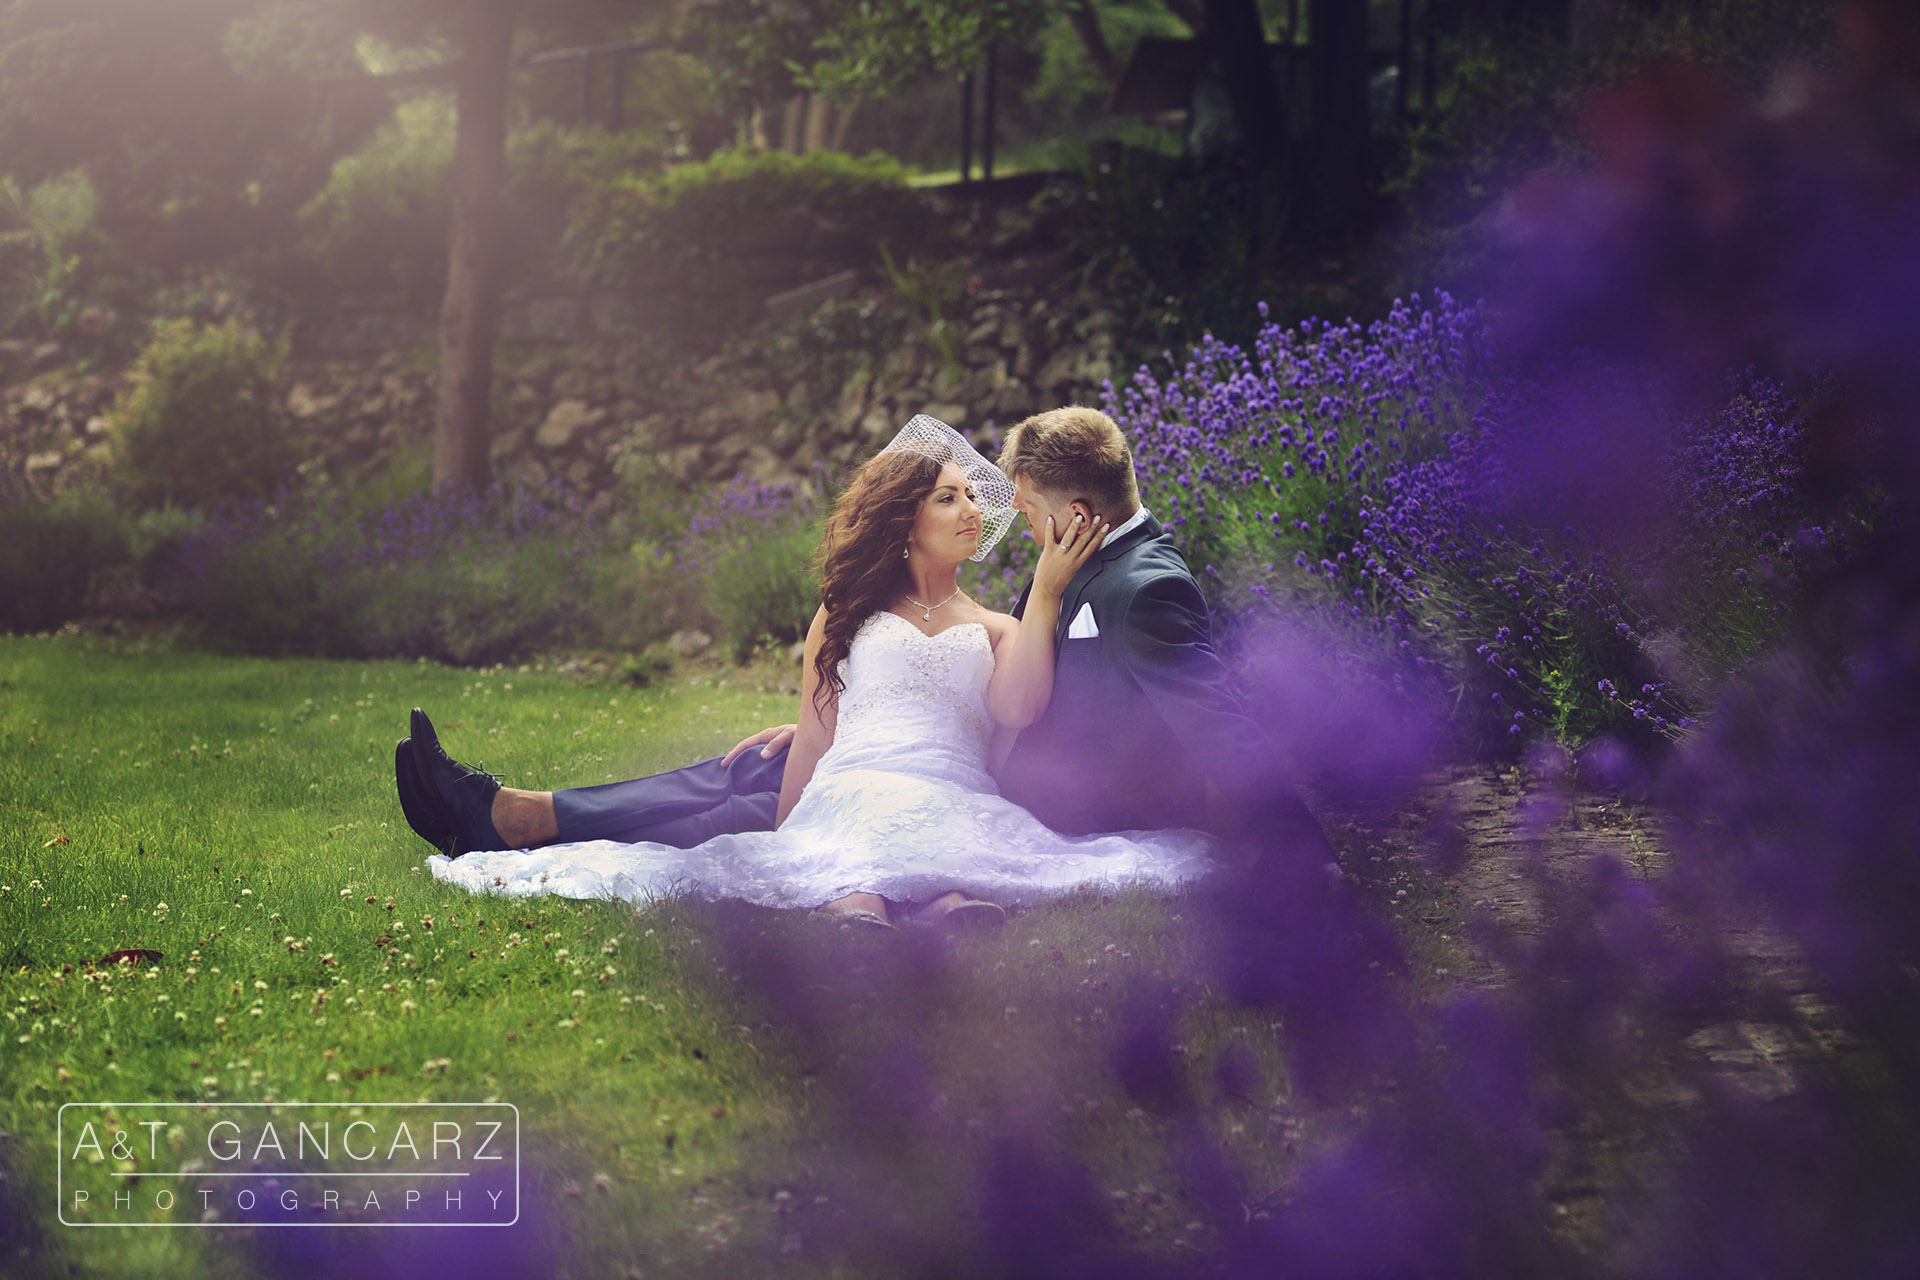 wedding photographer manchester, A&T Gancarz Photography